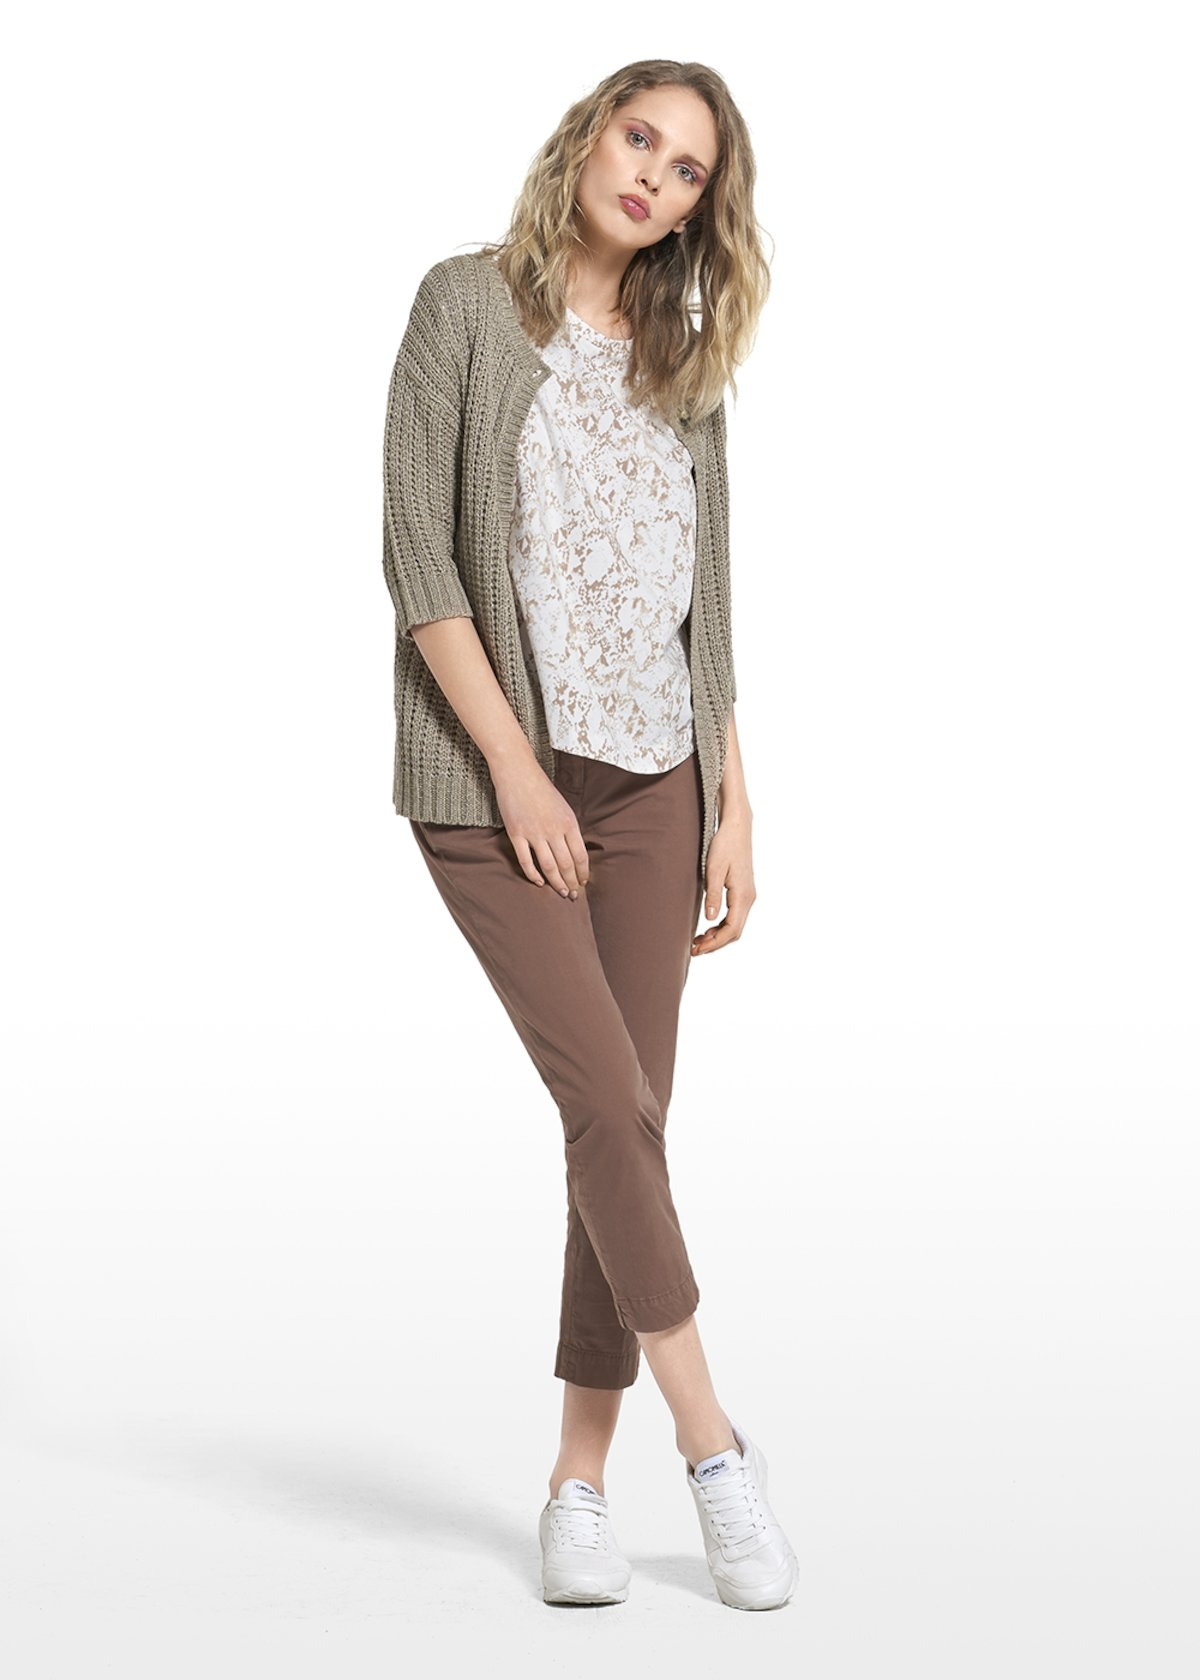 Cardigan Carlie with single button closure and with 3/4 sleeves - Beige - Woman - Category image